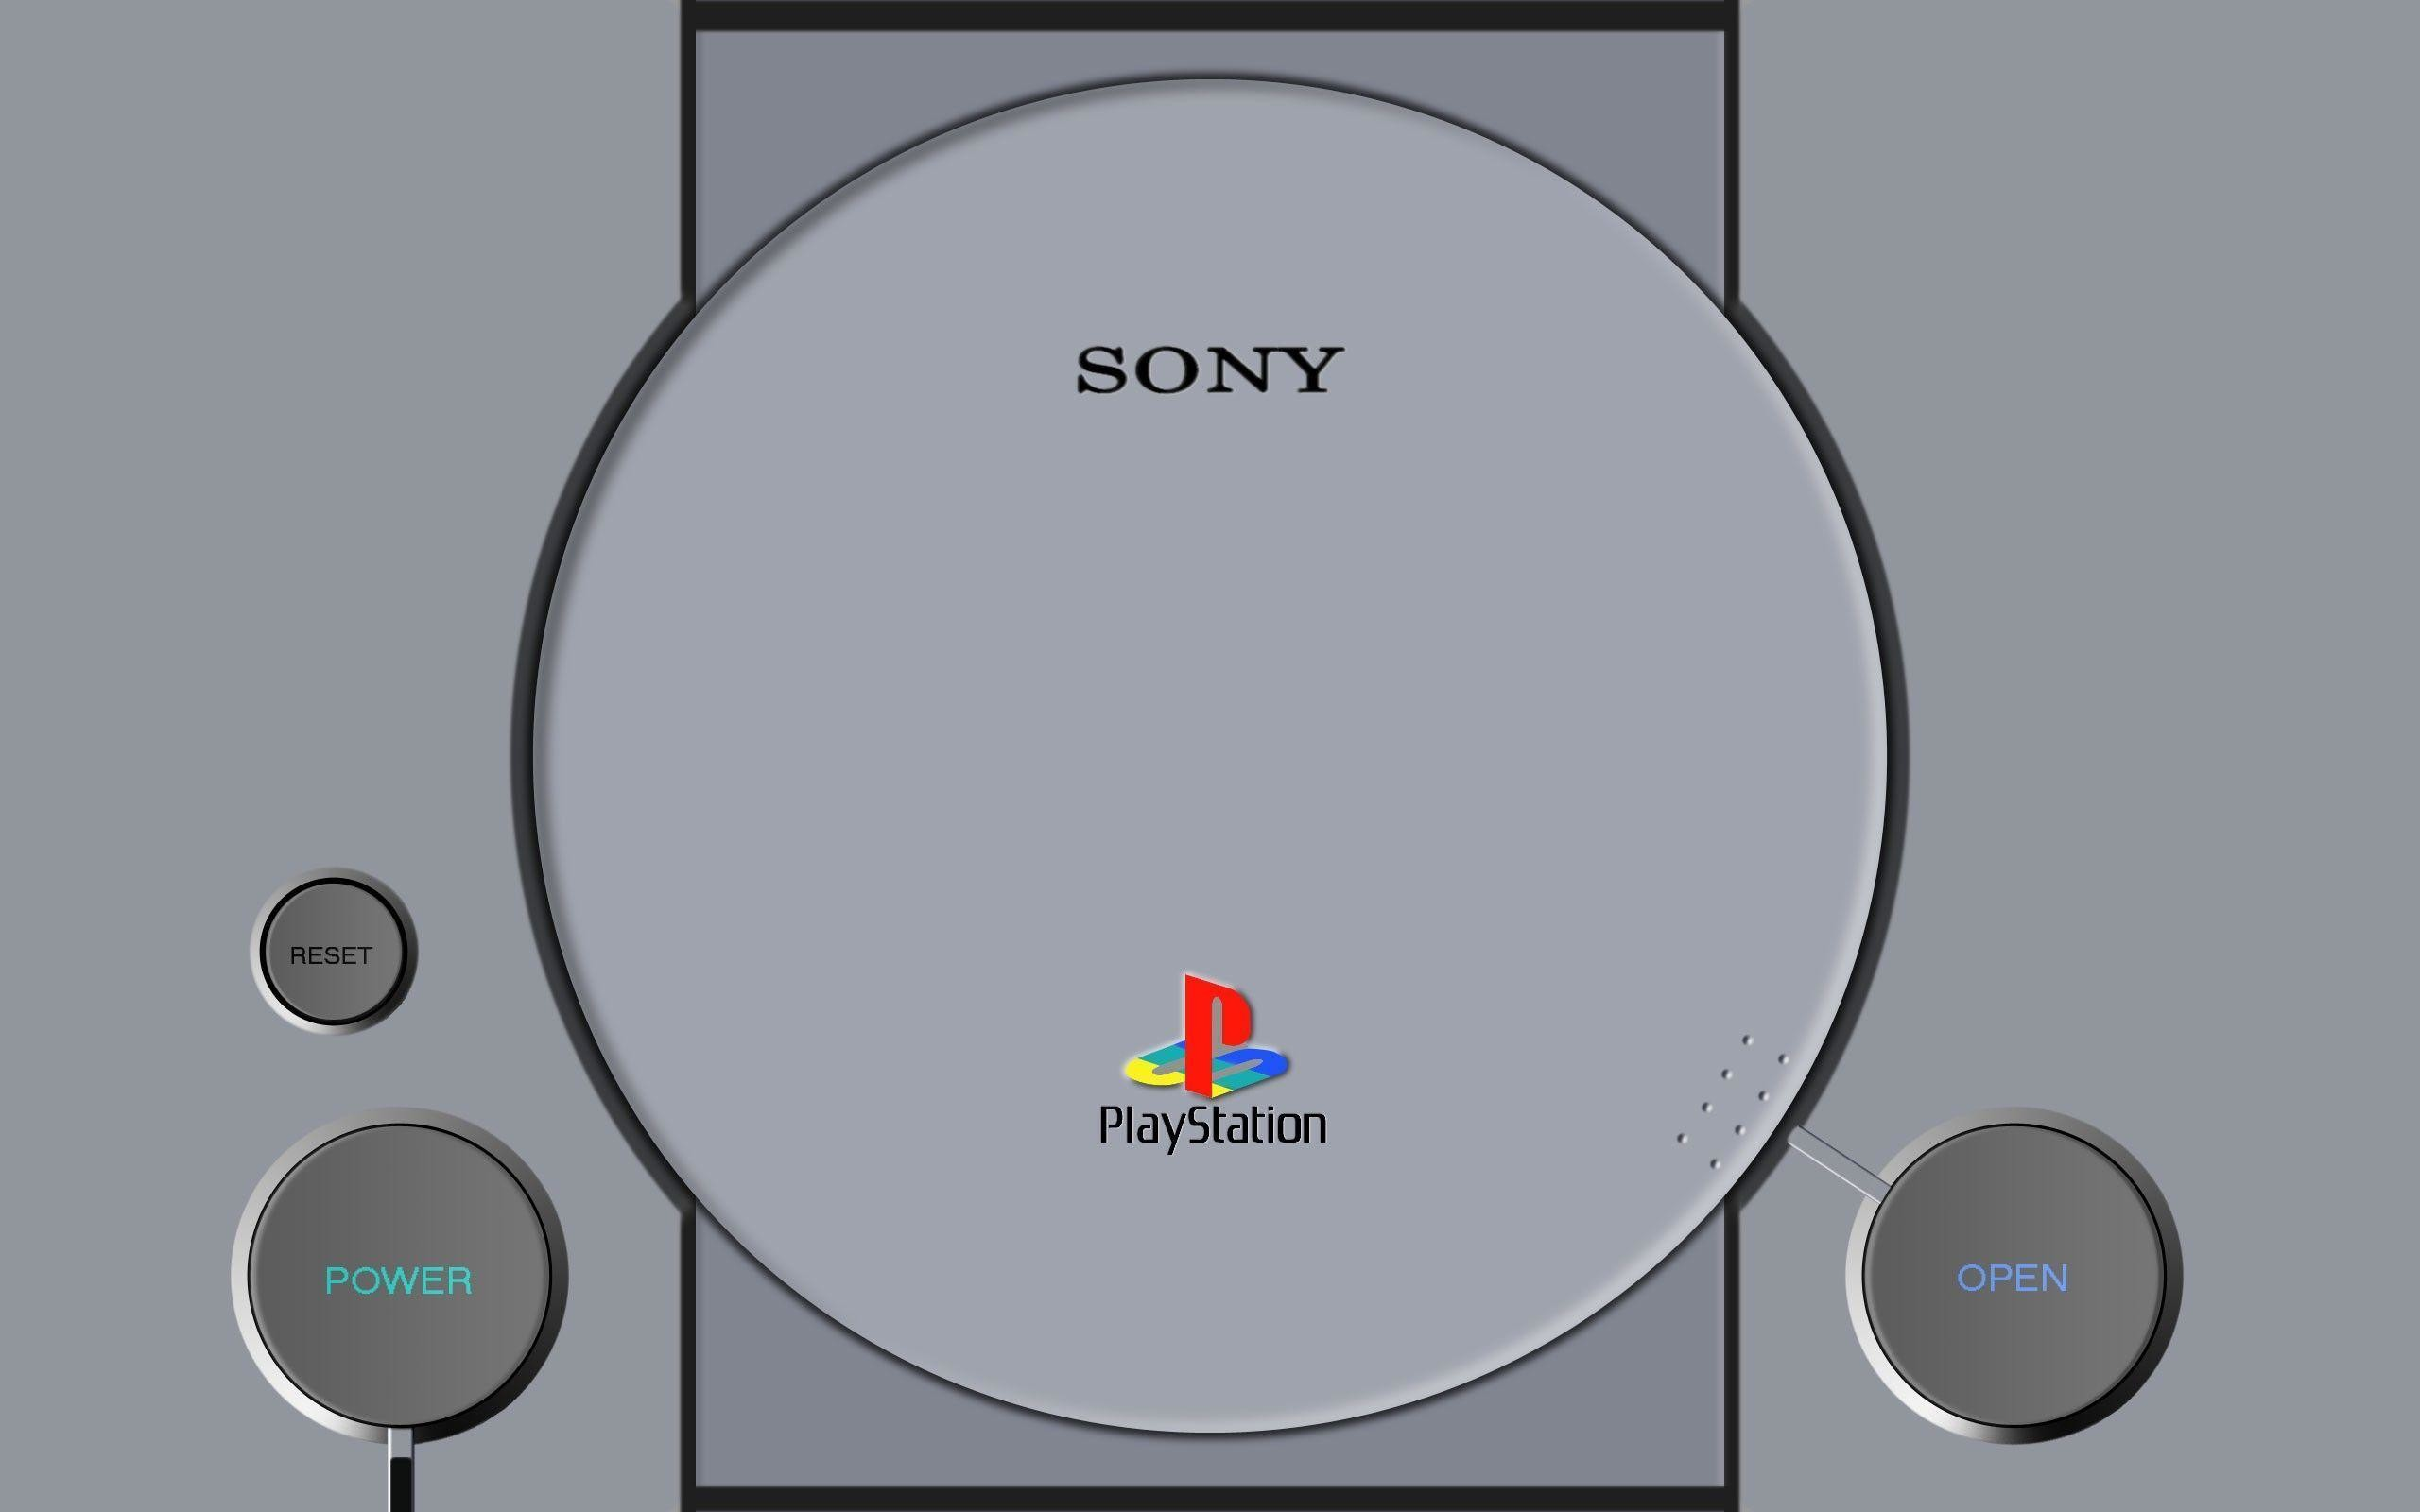 2560x1600 Free Original Playstation Wallpapers, Free Original Playstation HD .